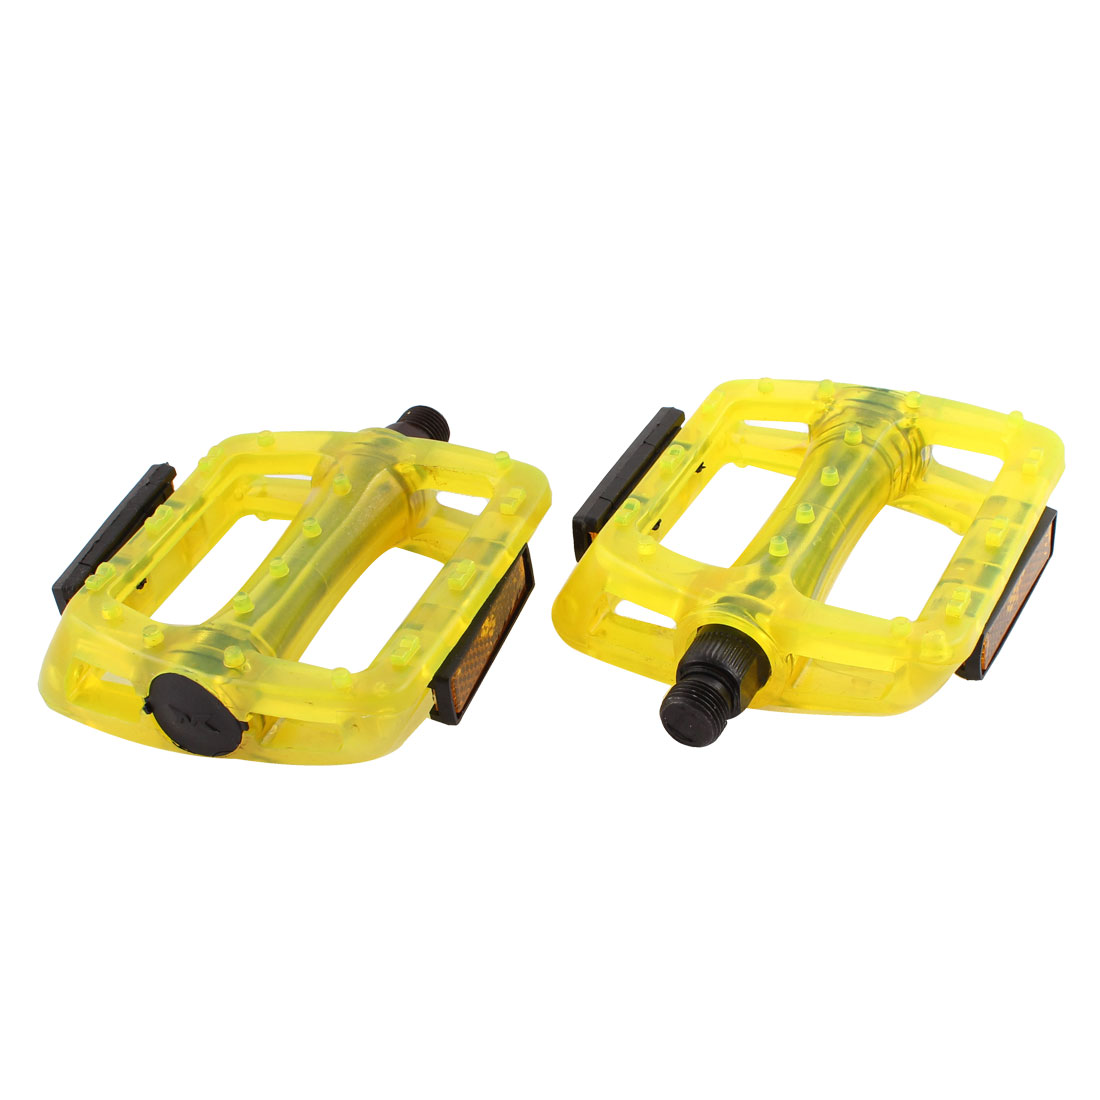 Pair Mountain Road Bike Bicycle Plastic Nonslip Platform Flat Cage Pedals Yellow